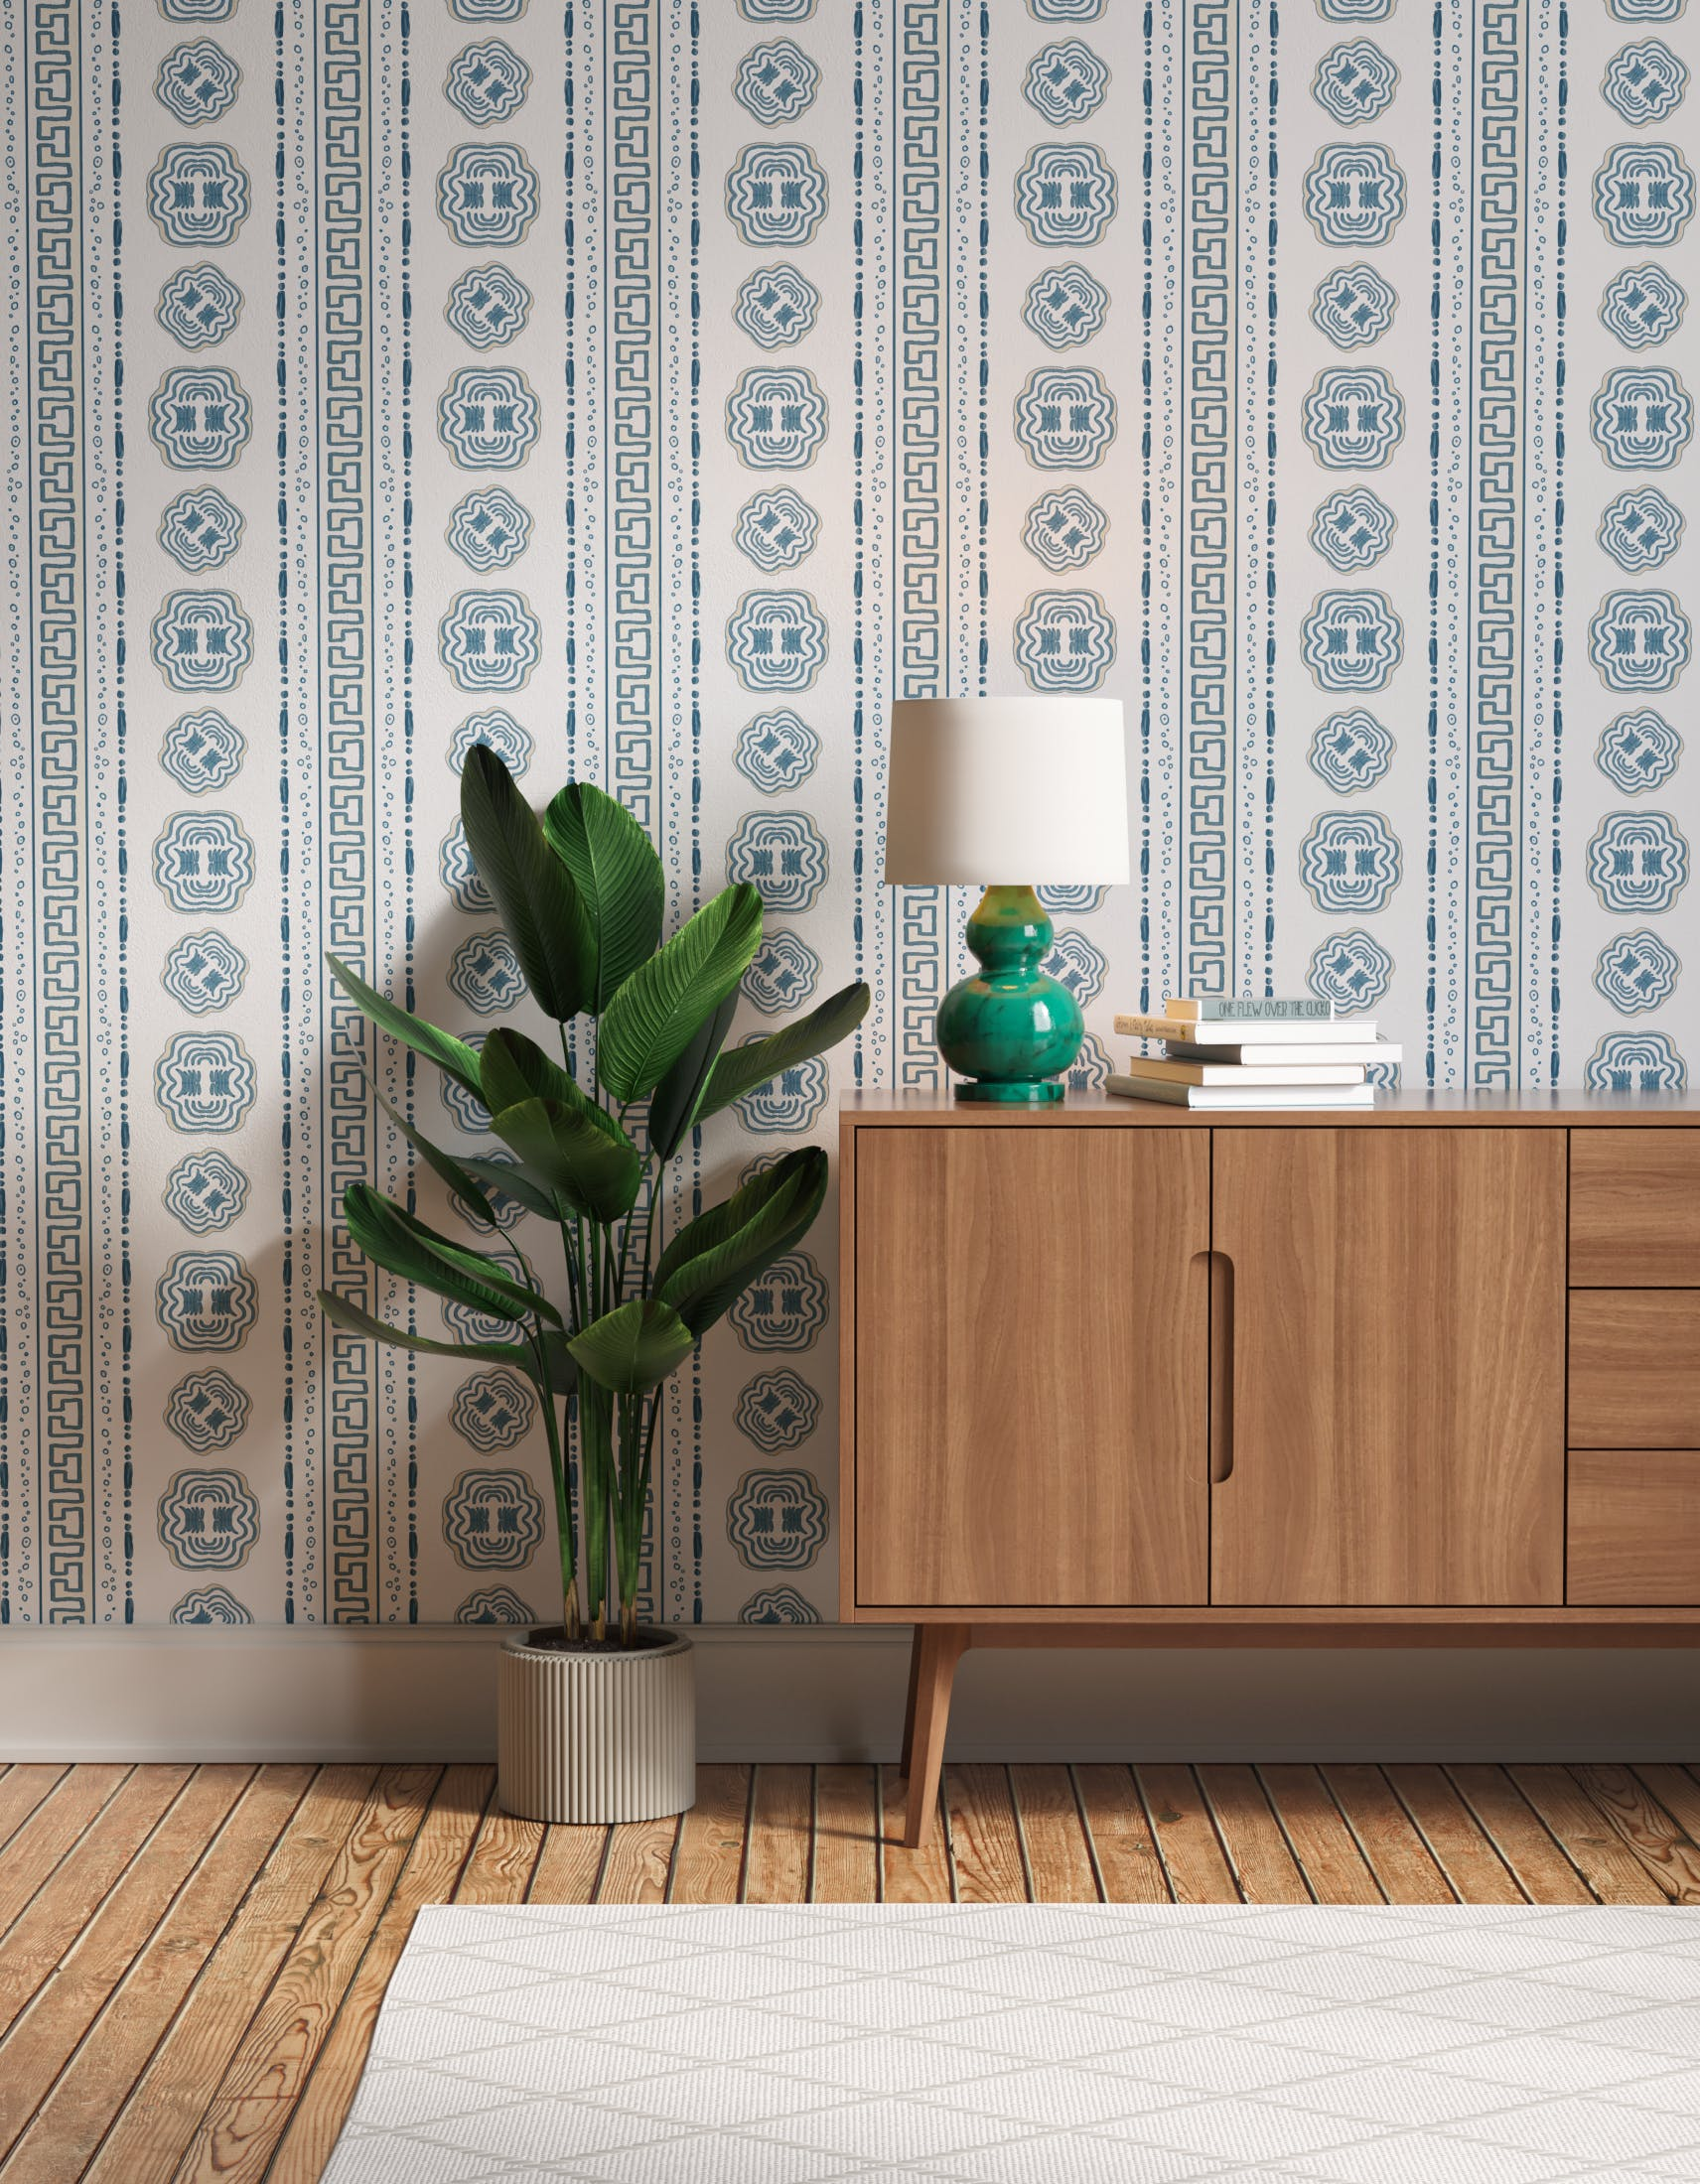 Hallway decorated with Lick x Lottie McDowell Hestia 01 greek patterened wallpaper